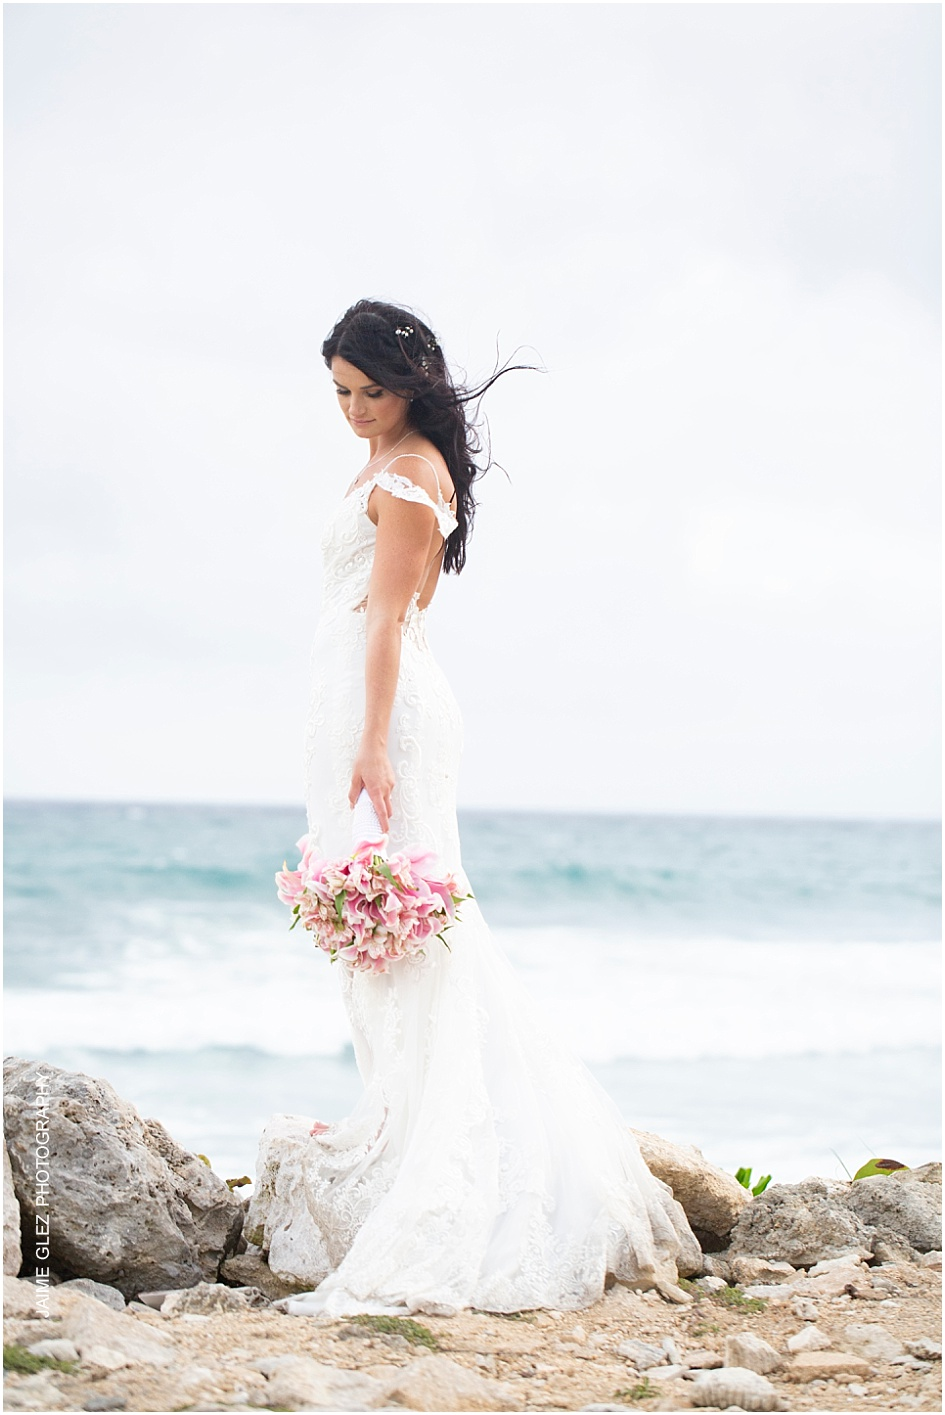 Fresh & romantic bridal style.